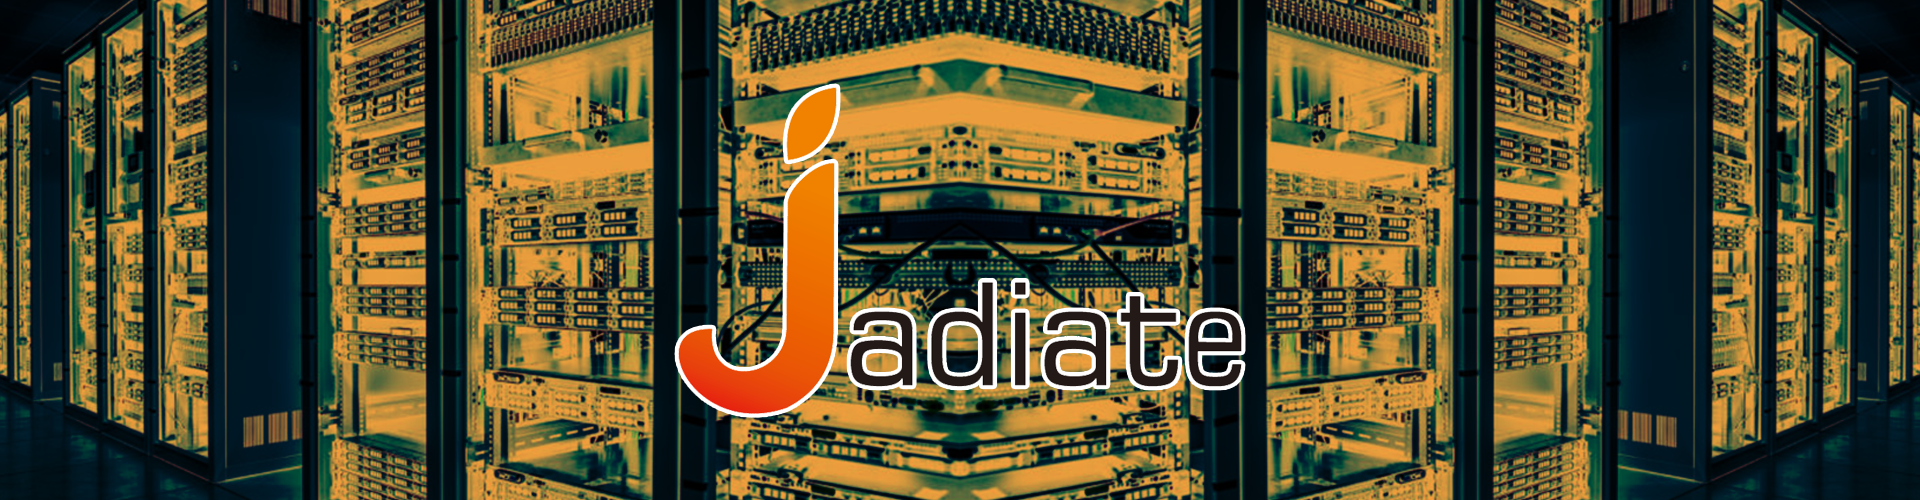 www.jadiate.co.id